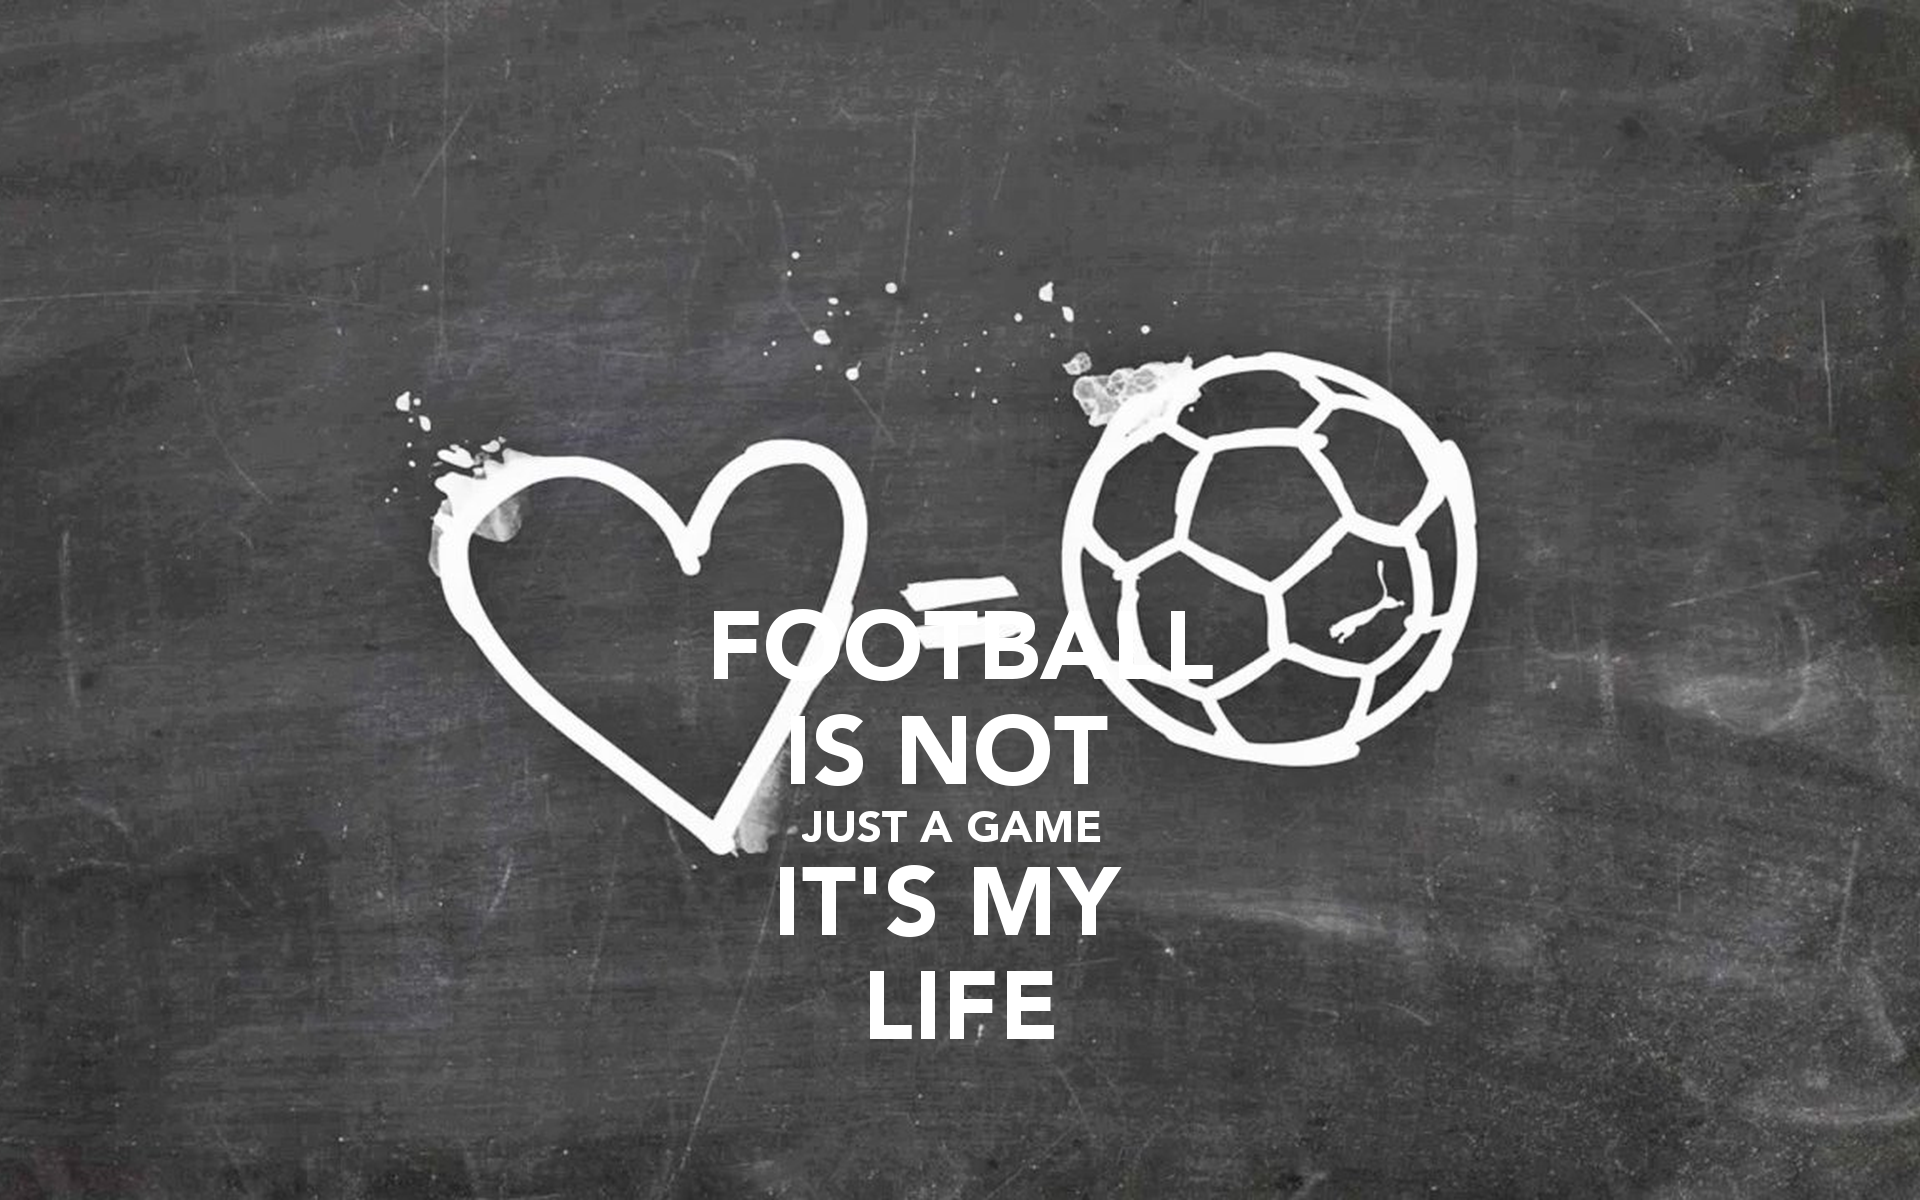 football-is-not-just-a-game-its-my-life-4